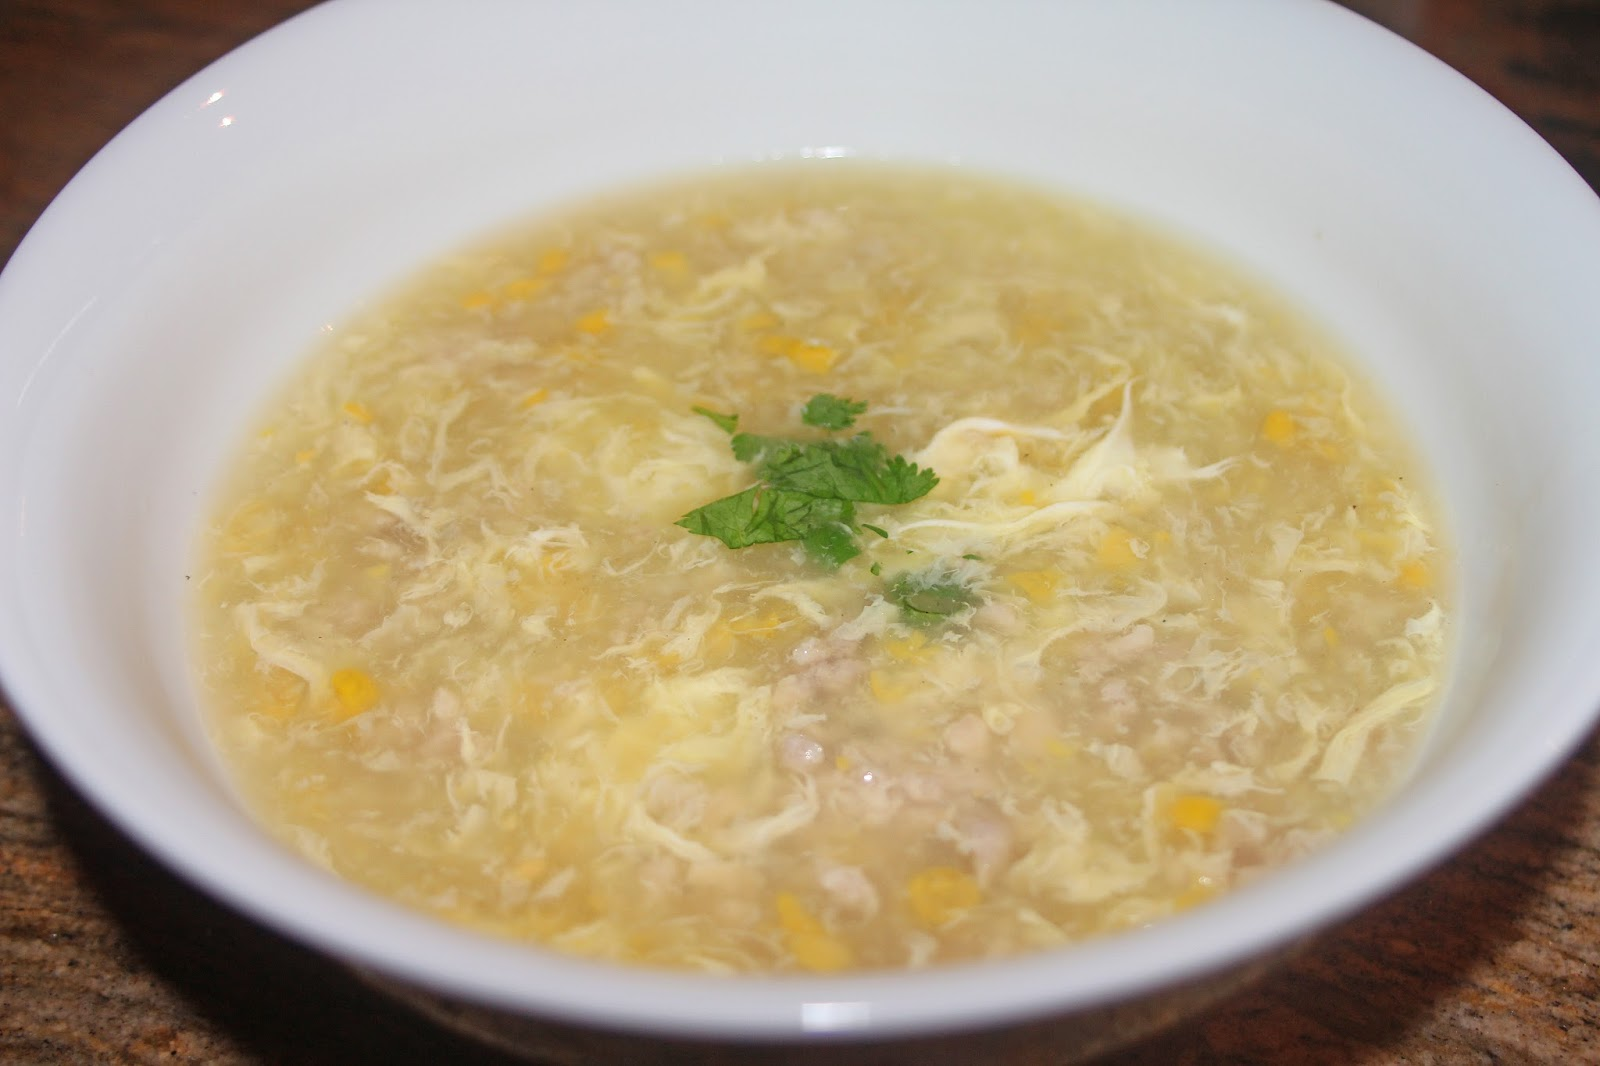 Chinese Egg Drop Soup. Image courtesy of The Grub Files blog .